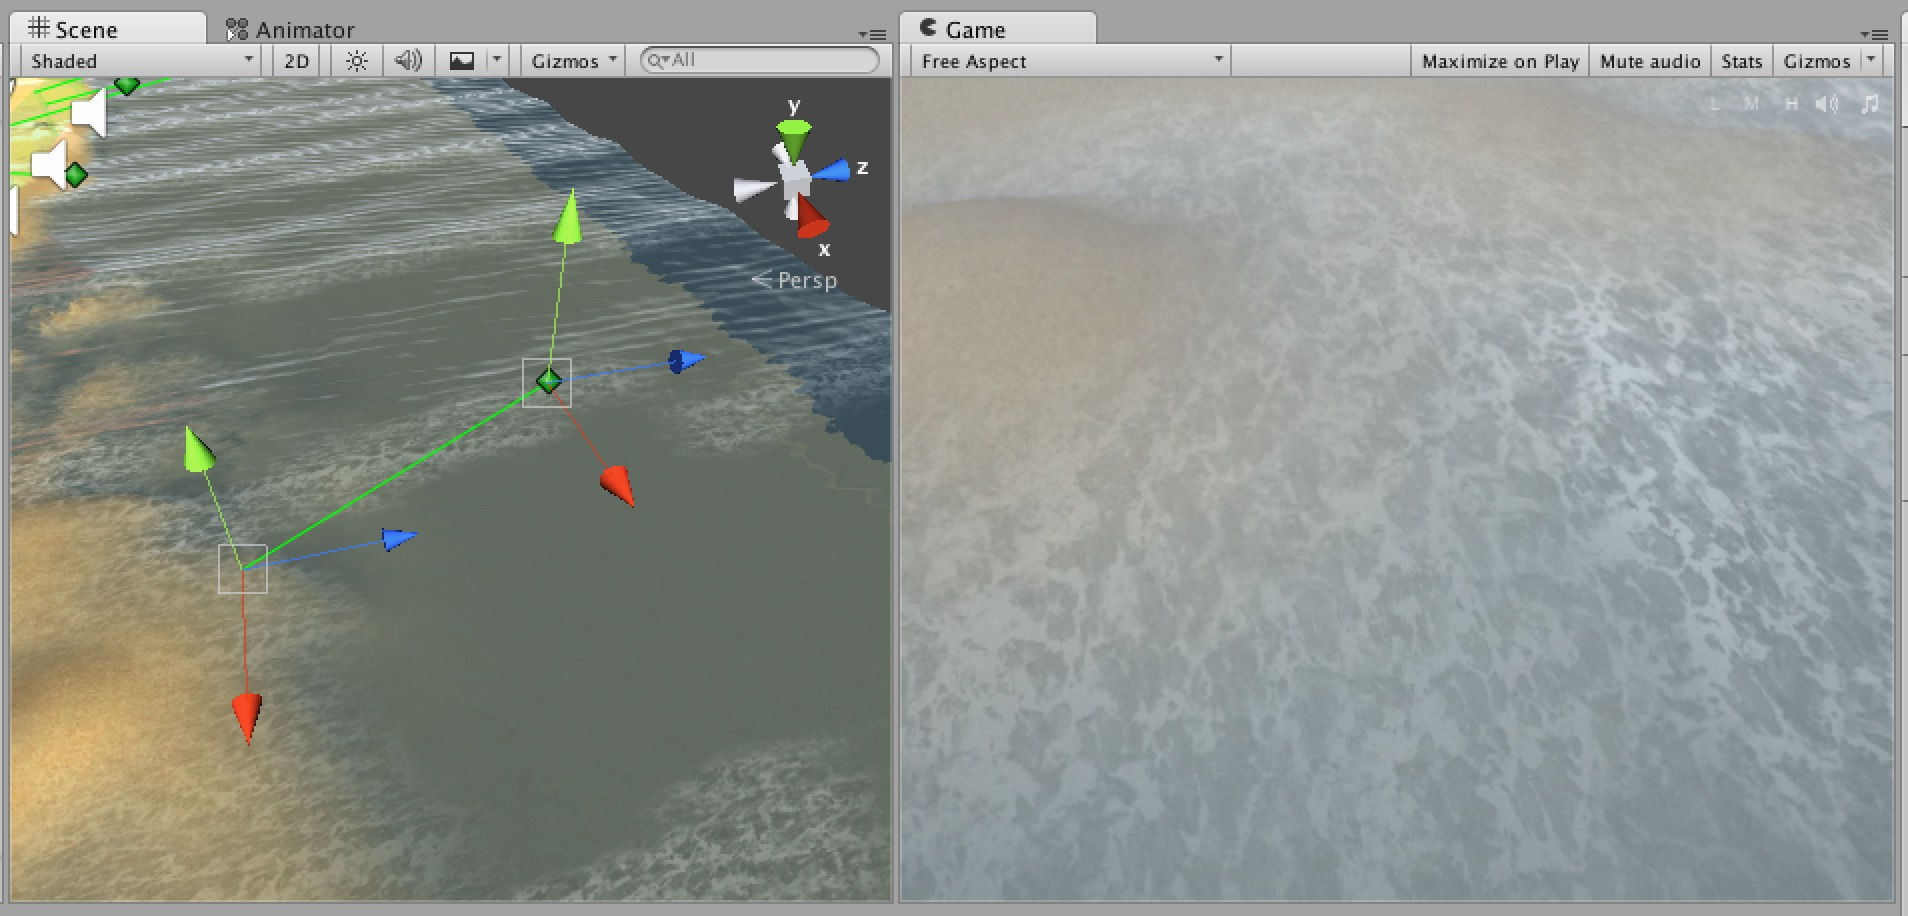 How to Set Up a Fixed Camera System in Unity